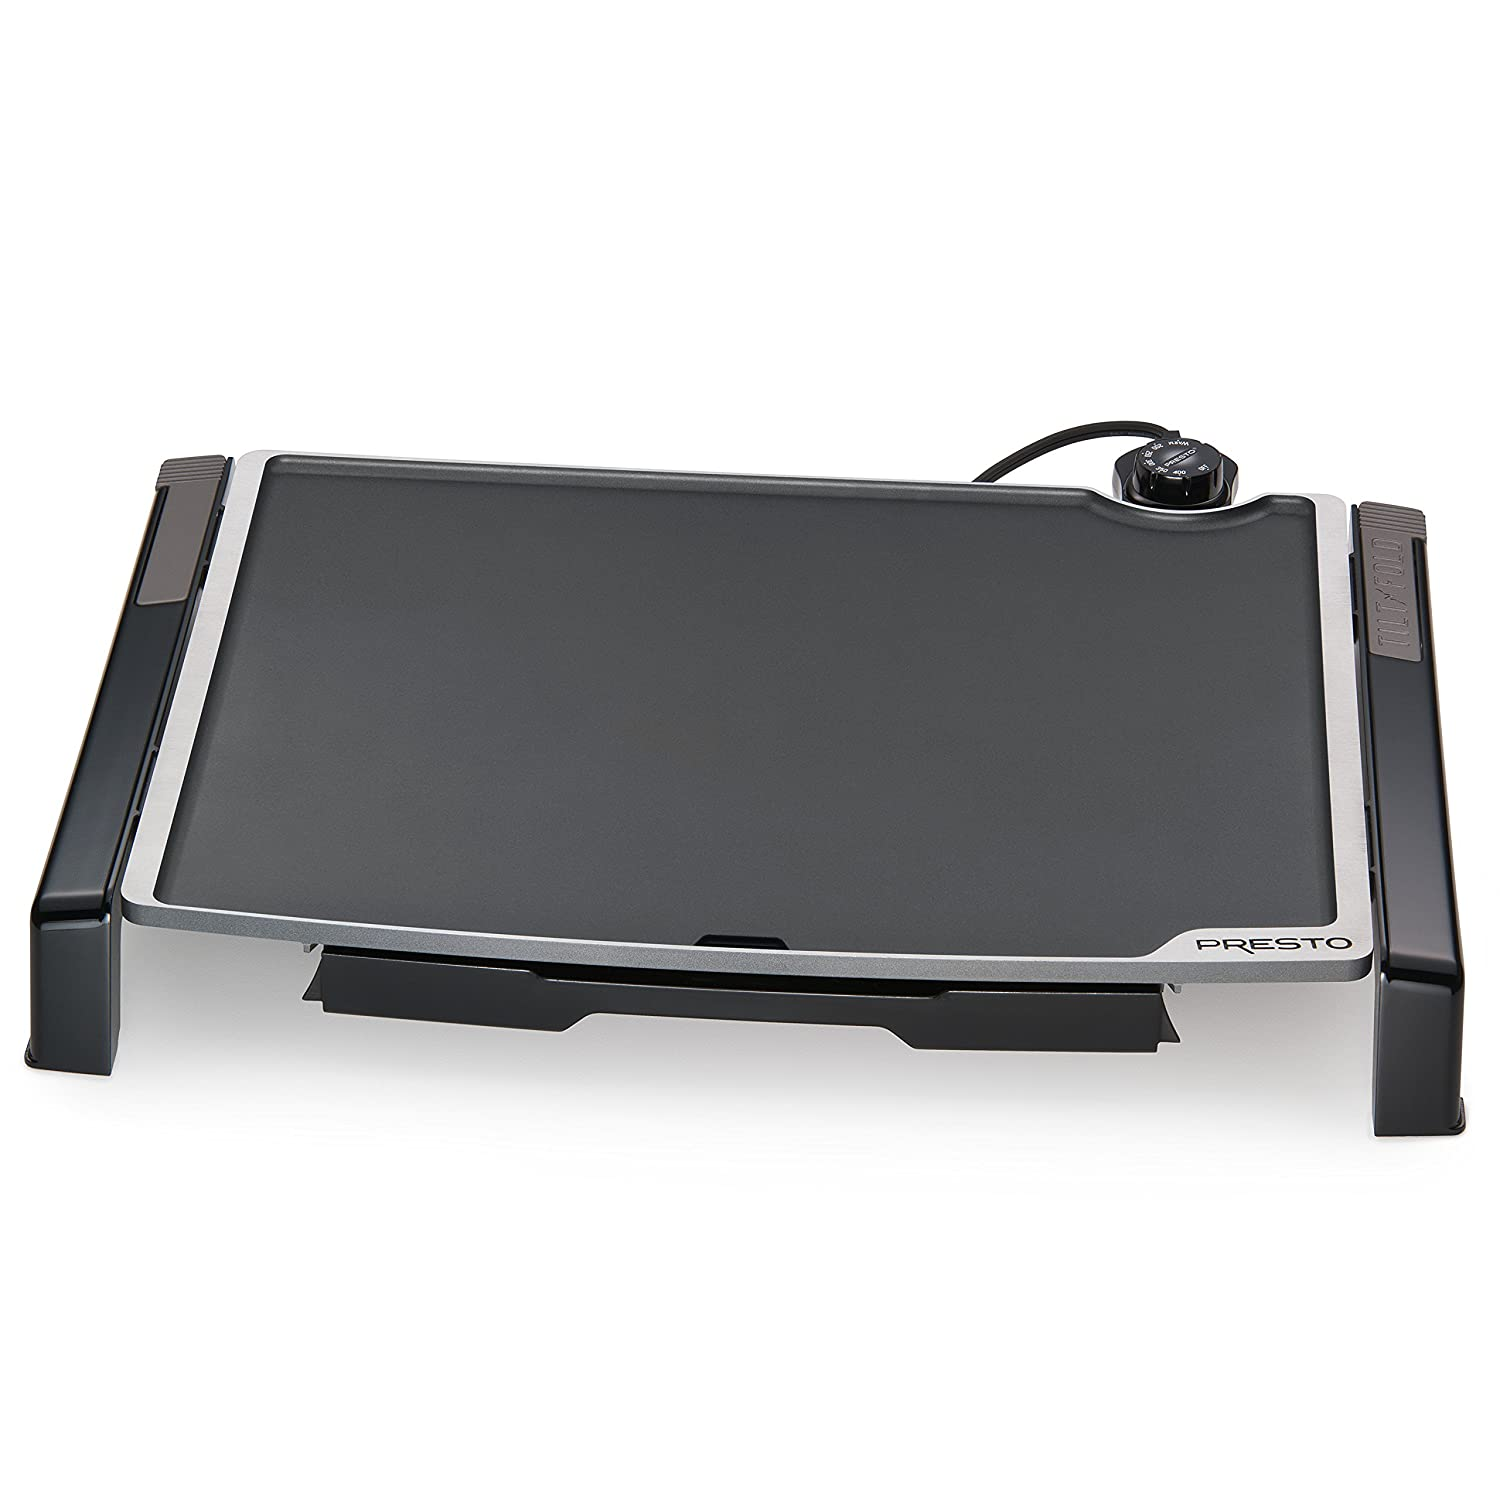 "Presto 07073 Electric Tilt-N-fold Griddle, 19"", Black"